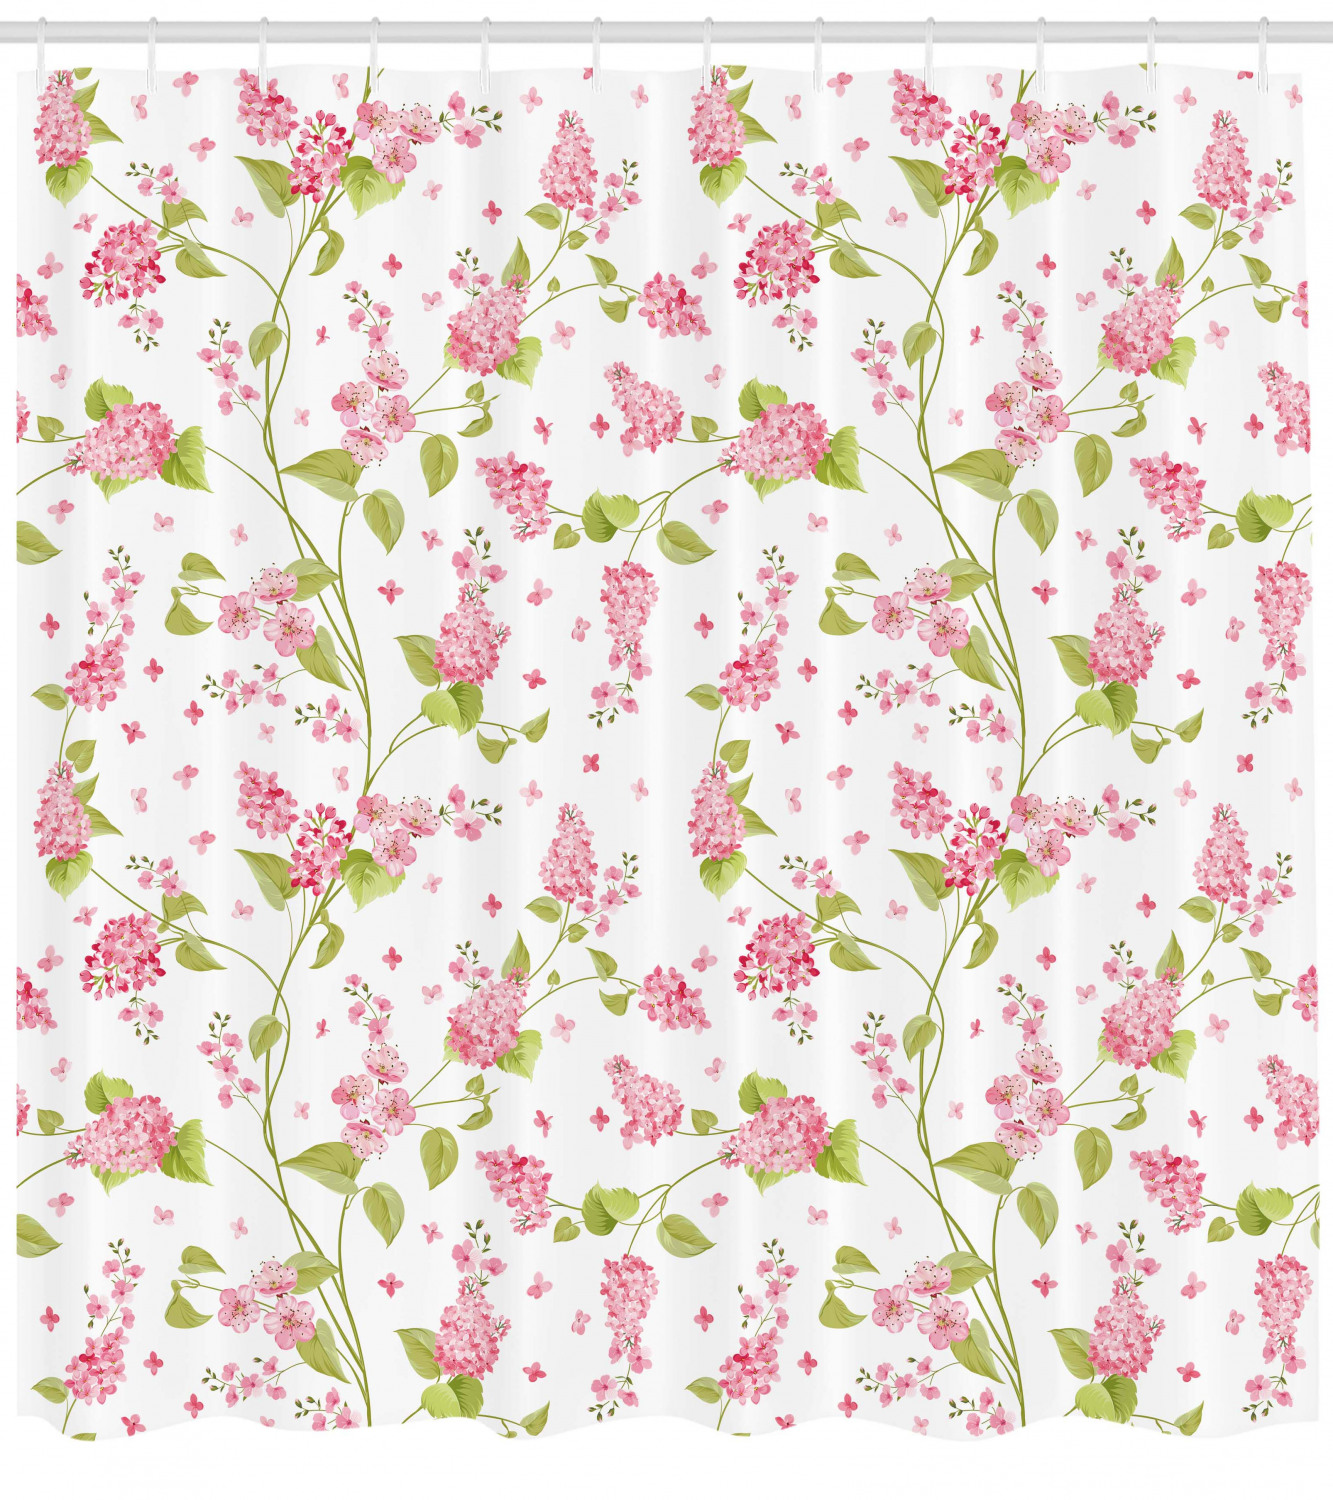 Shabby Chic Shower Curtain Nature Blossoms Buds Flowers Lavenders Florals Leaves Ivy Artwork Fabric Bathroom Set With Hooks 69w X 70l Inches Pink